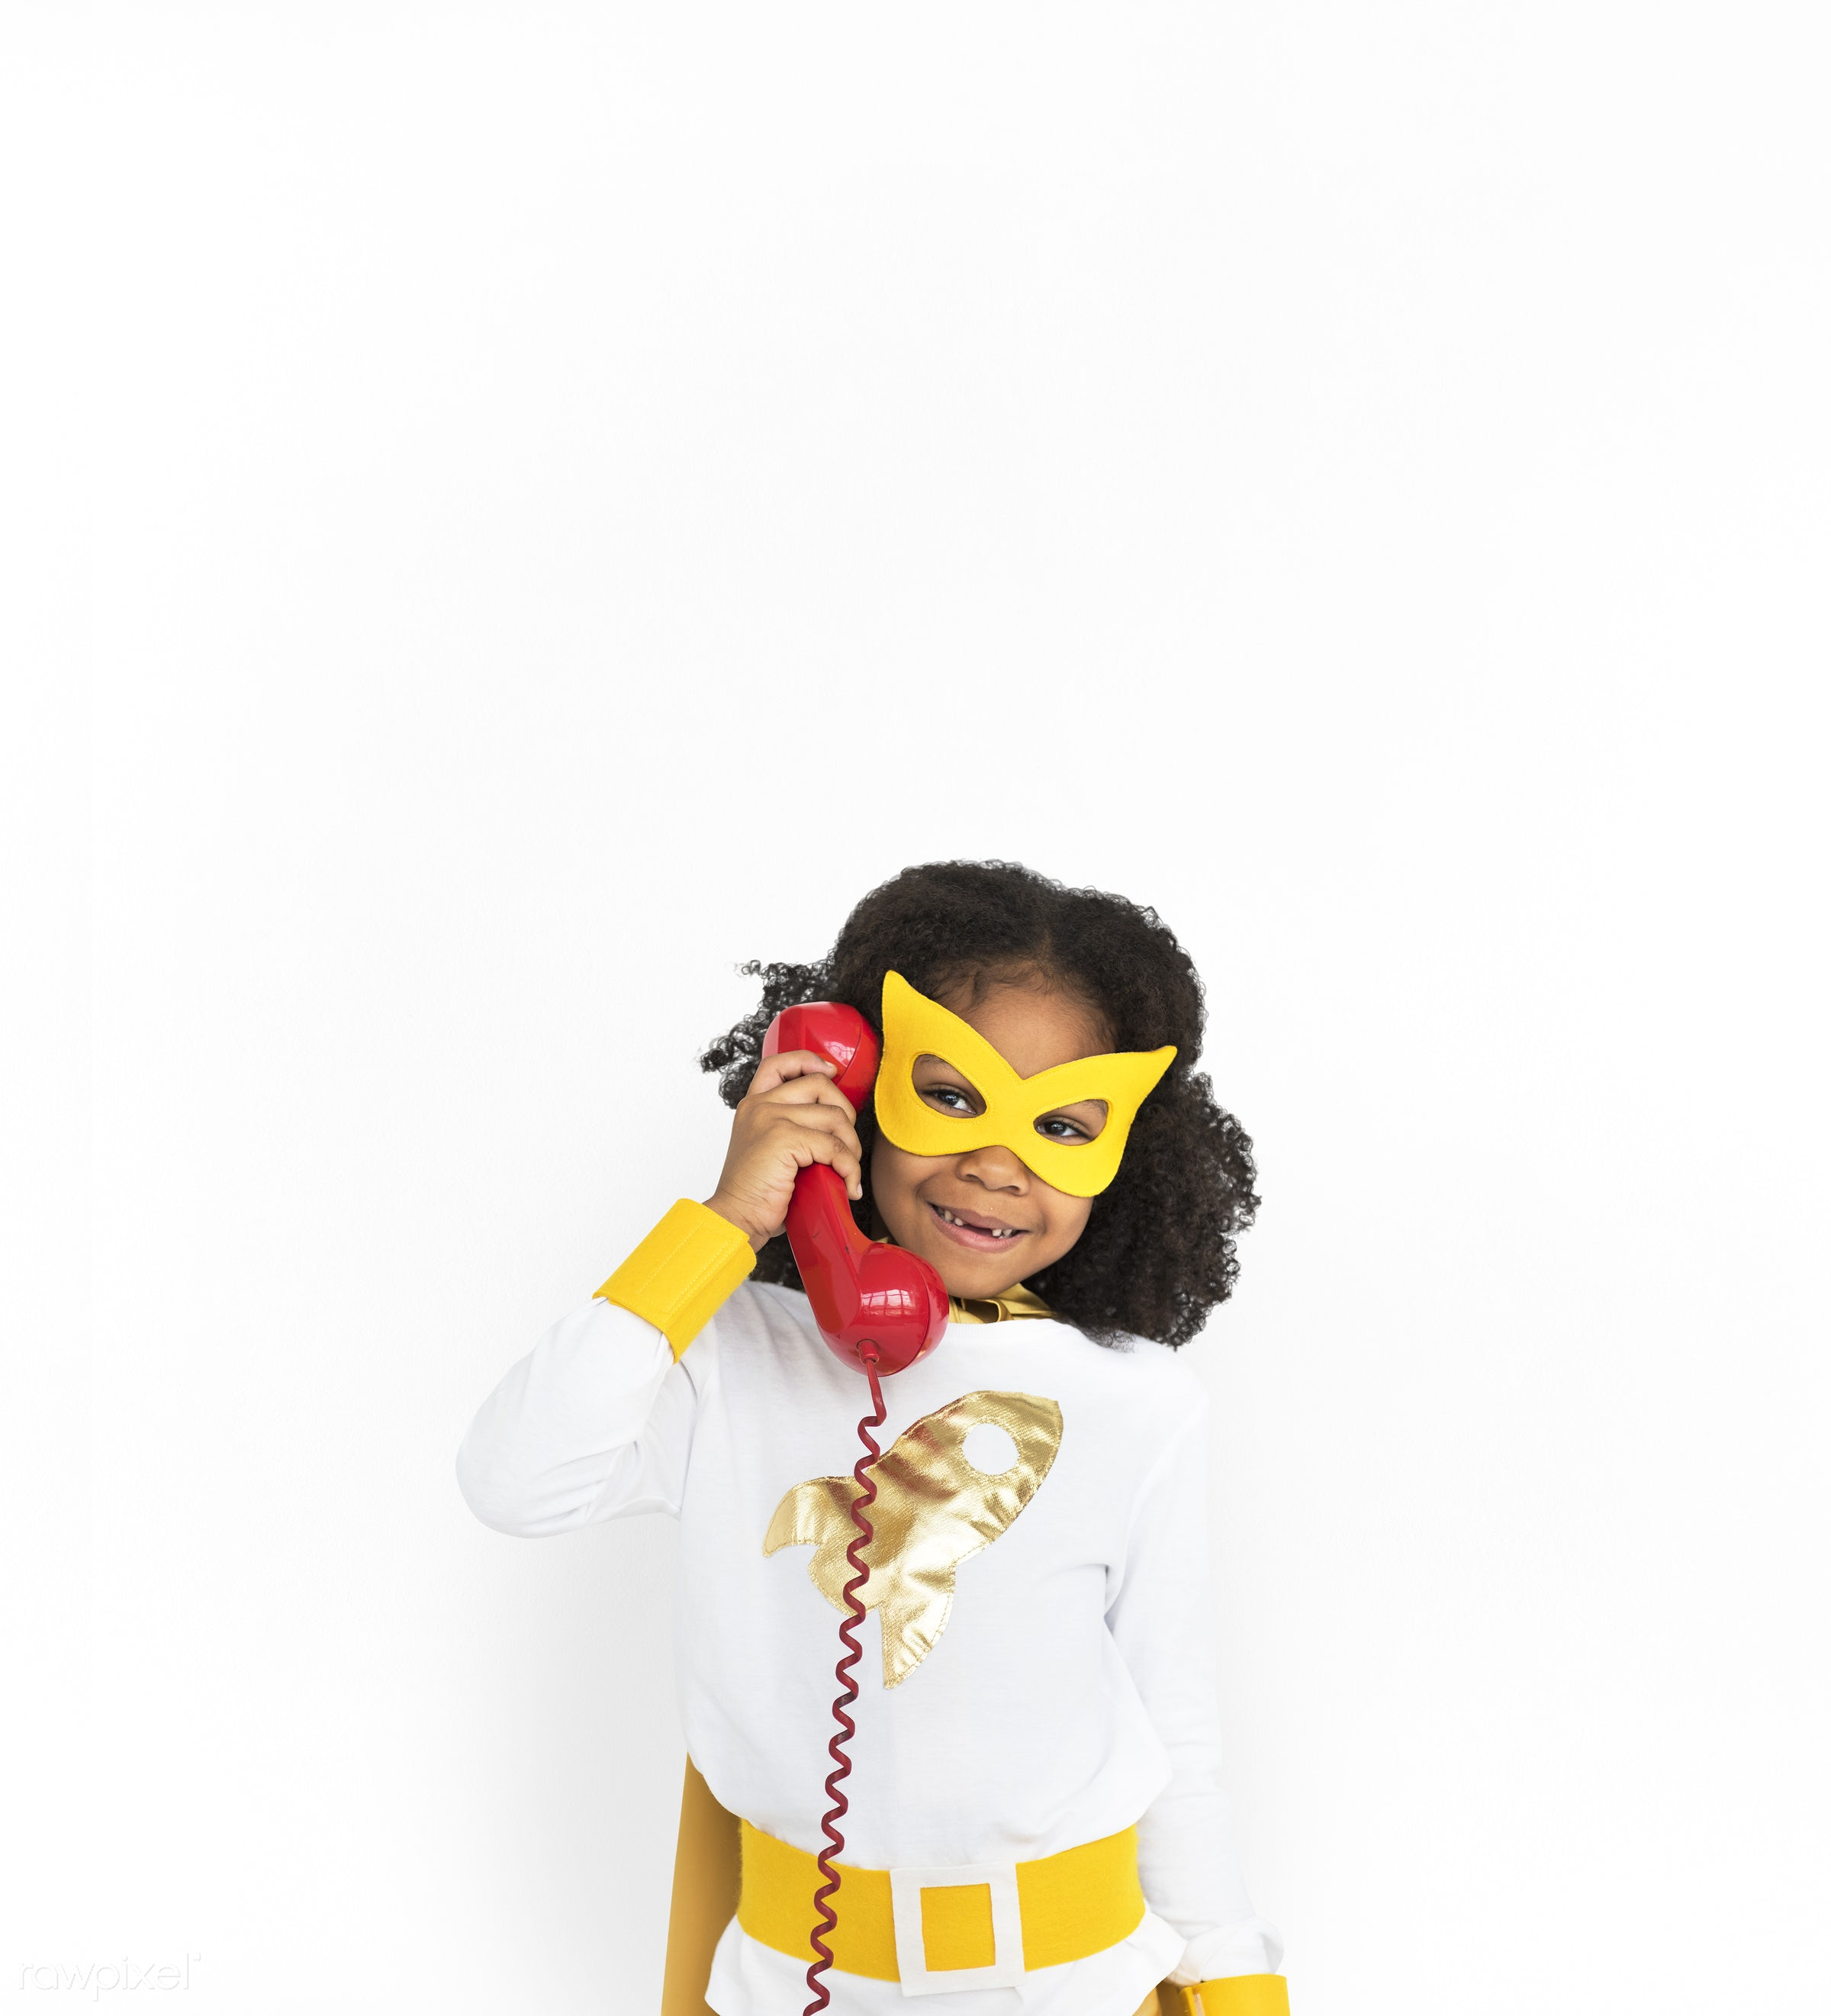 studio, expression, person, mask, people, kid, telecommunication, solo, childhood, smile, cheerful, smiling, isolated,...